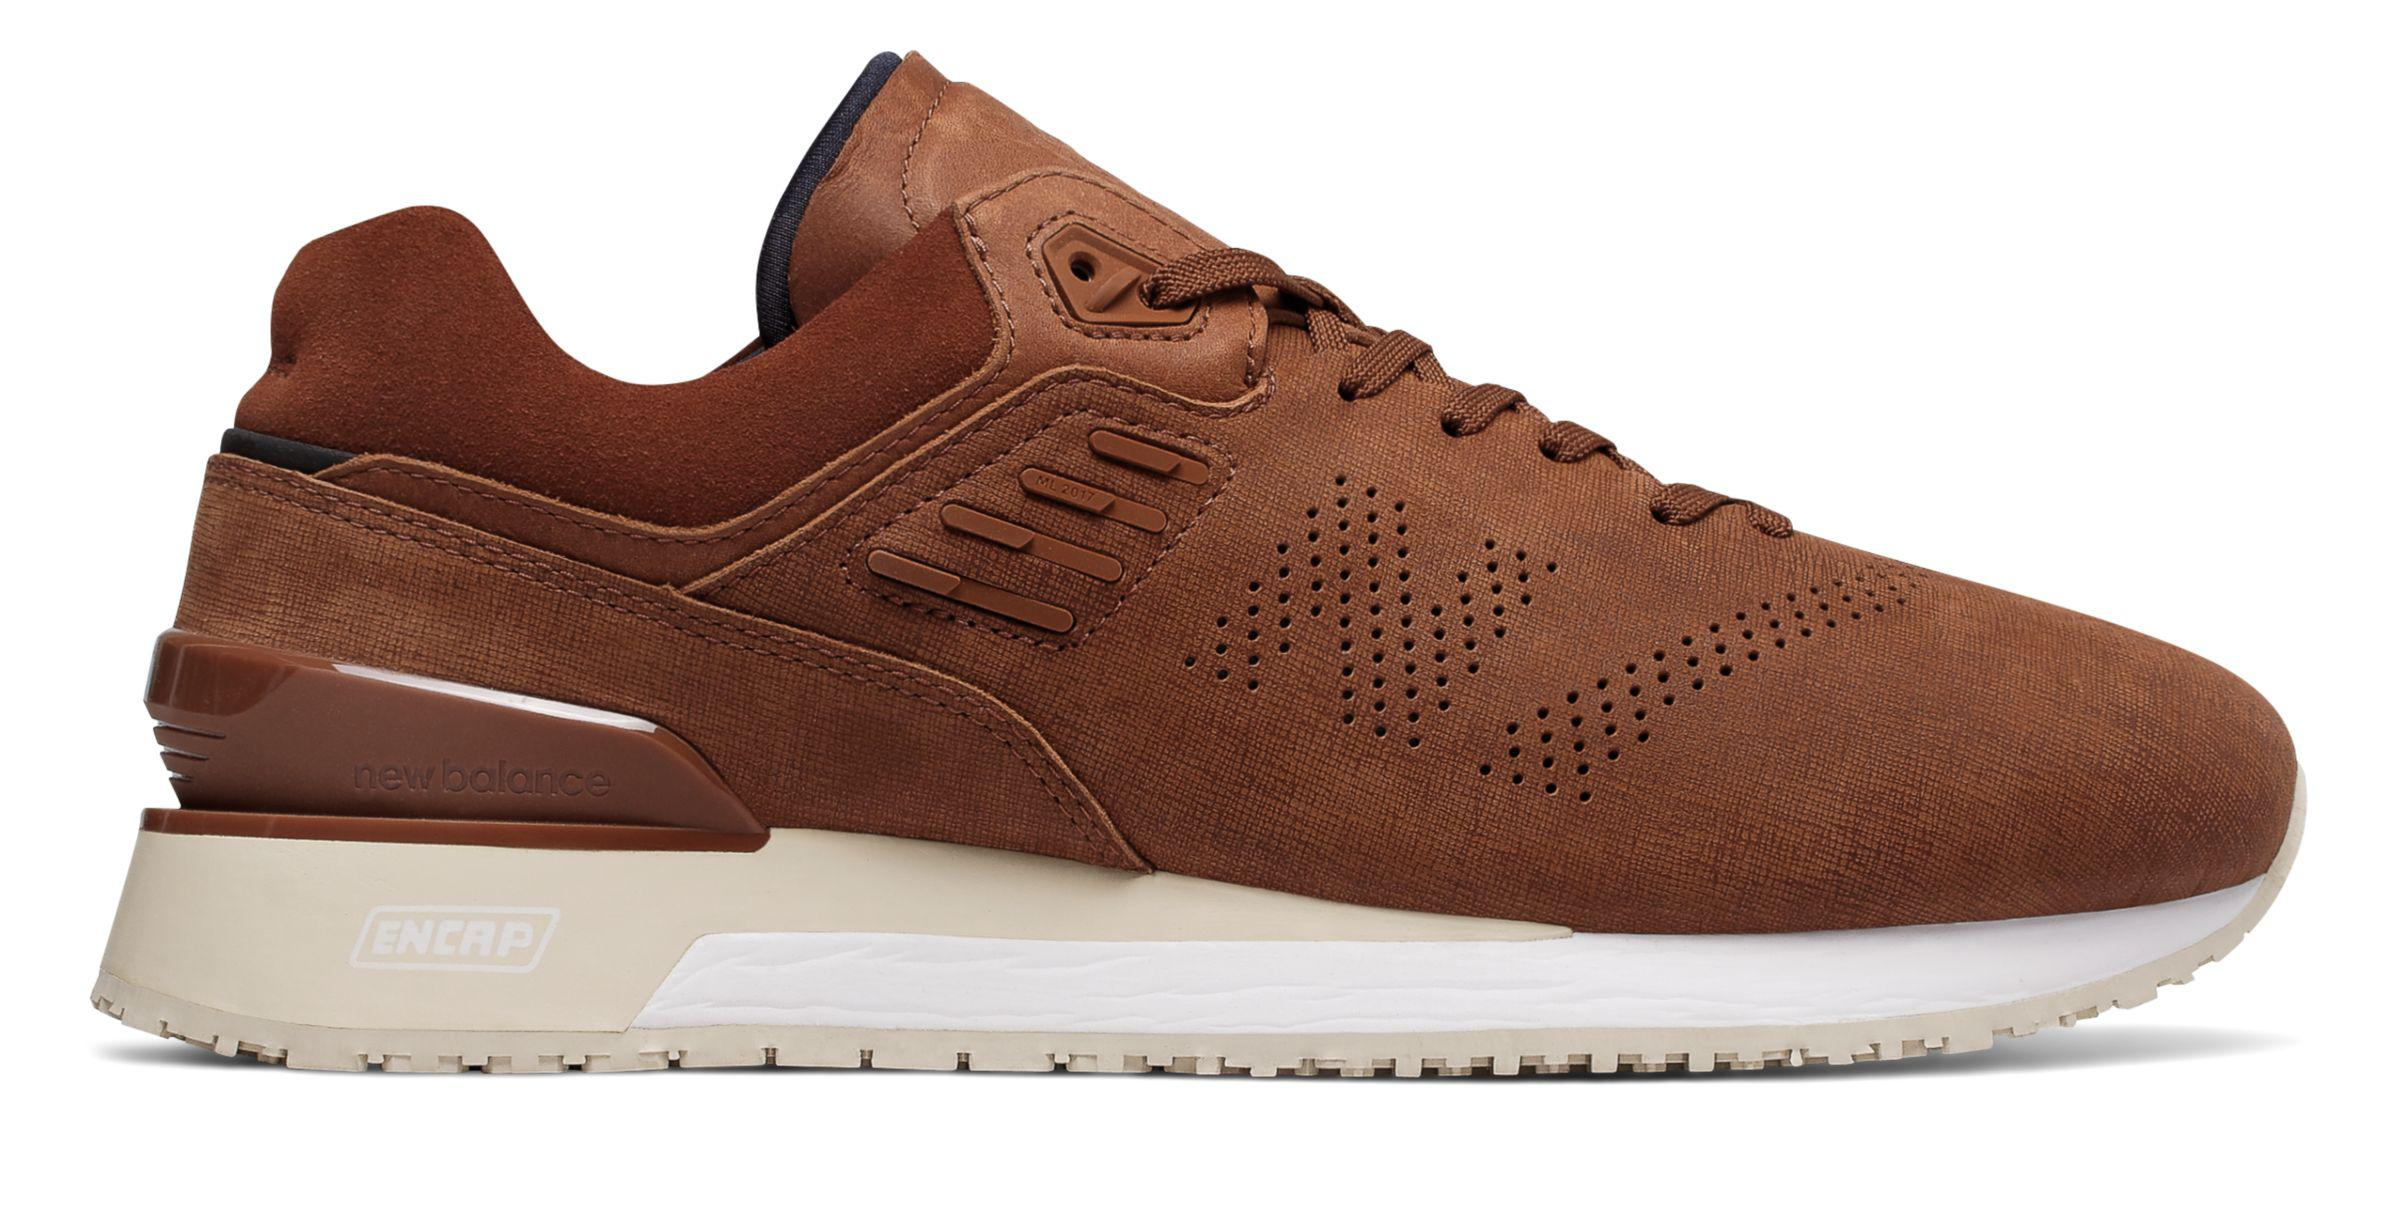 Lyst New Balance 2017 Deconstructed for in marrone for Deconstructed Uomo 59dfaa